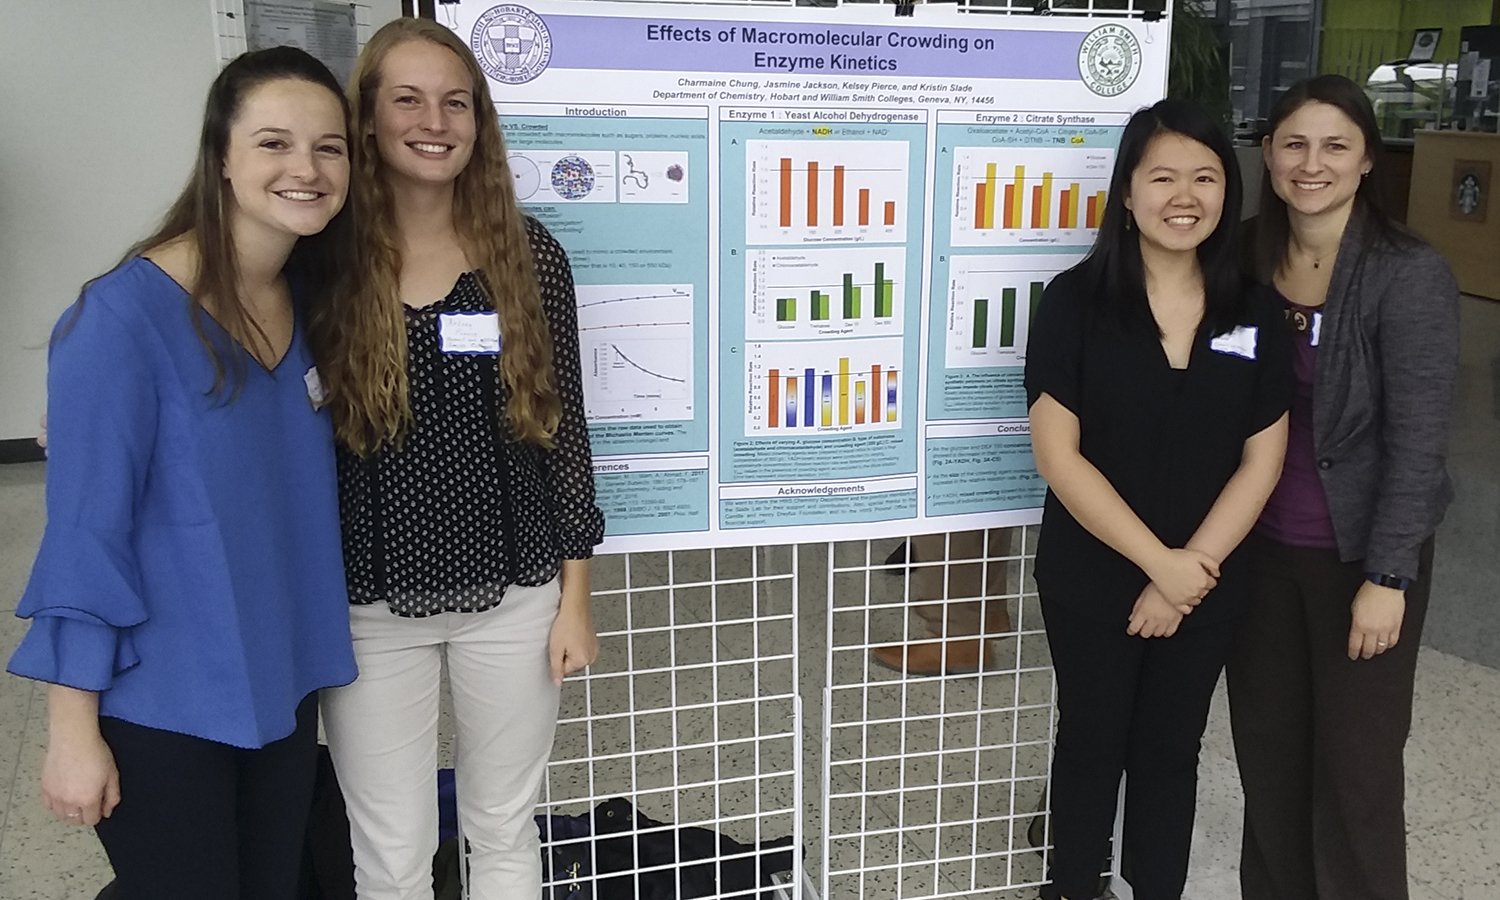 On Saturday Nov 17, 7 students (Charmaine Chung, Kelsey Pierce, Sophie Shaw, Roslyn Patel, Nate Webster, Marissa McFadden, Johnathan Thrall)  and 3 faculty (Walter Bowyer, Erin Pelkey, Kristin Slade) attended a Chemistry Conference at Binghamton University to present their research.  Charmaine Chung and Kelsey pierce won an award for the presentation of their research poster.Sophie Shaw, Kelsey Piece, Charmaine Chung, Kristin Slade with the winning poster